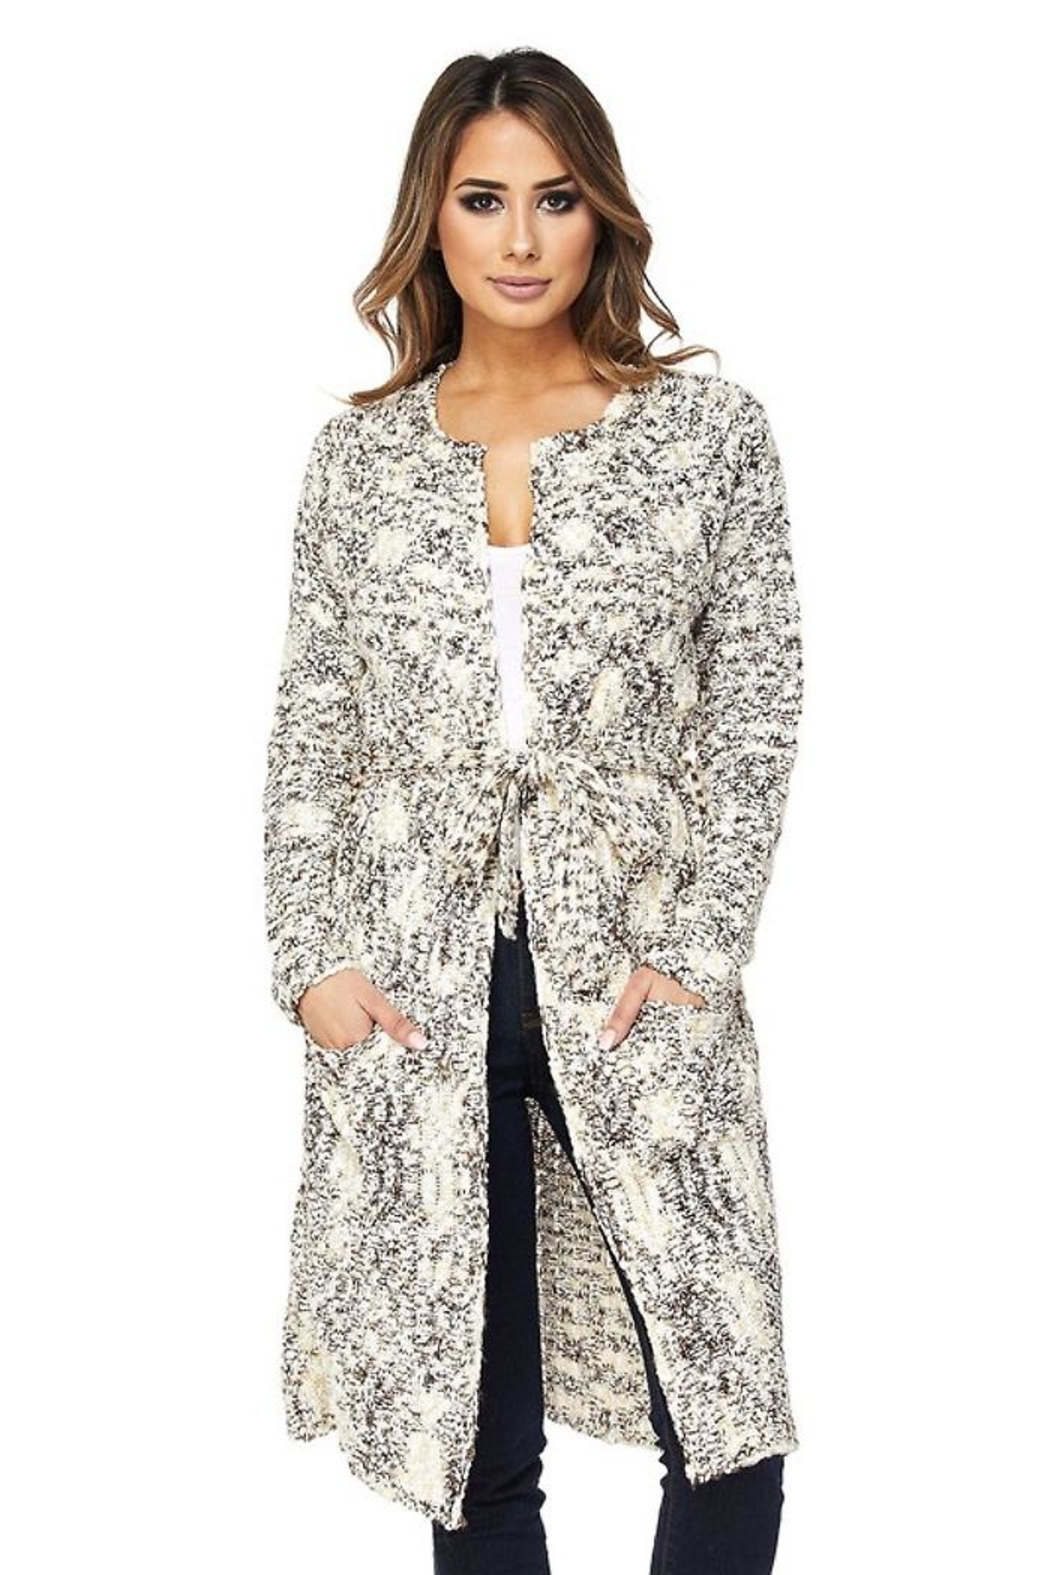 People Outfitter Cookies'n Cream Cardigan - Main Image